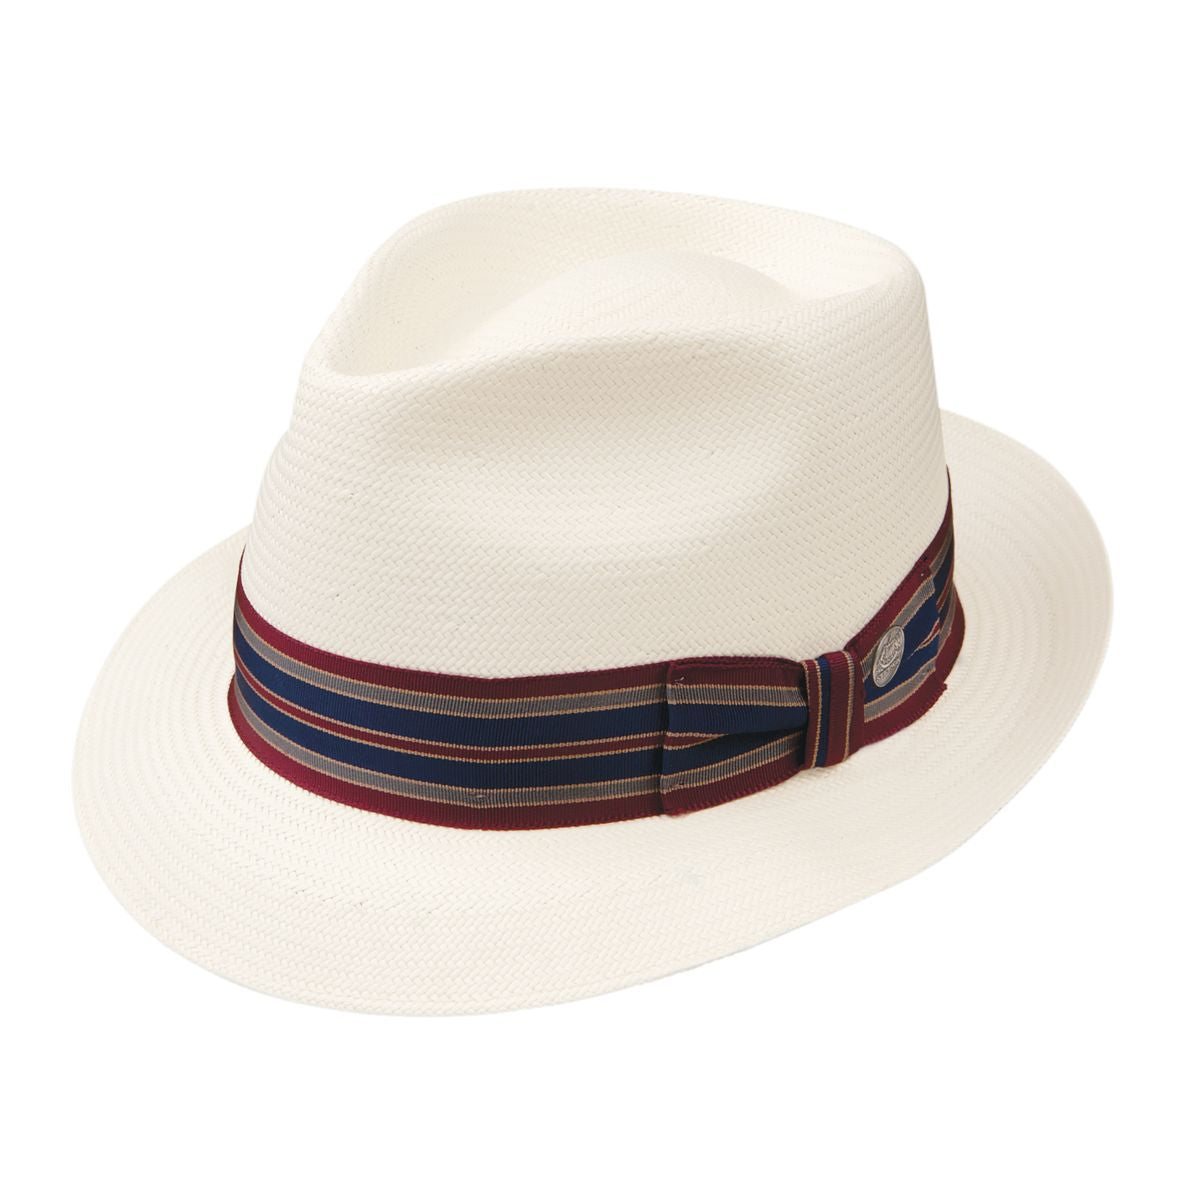 Stetson Rockport Straw Hat